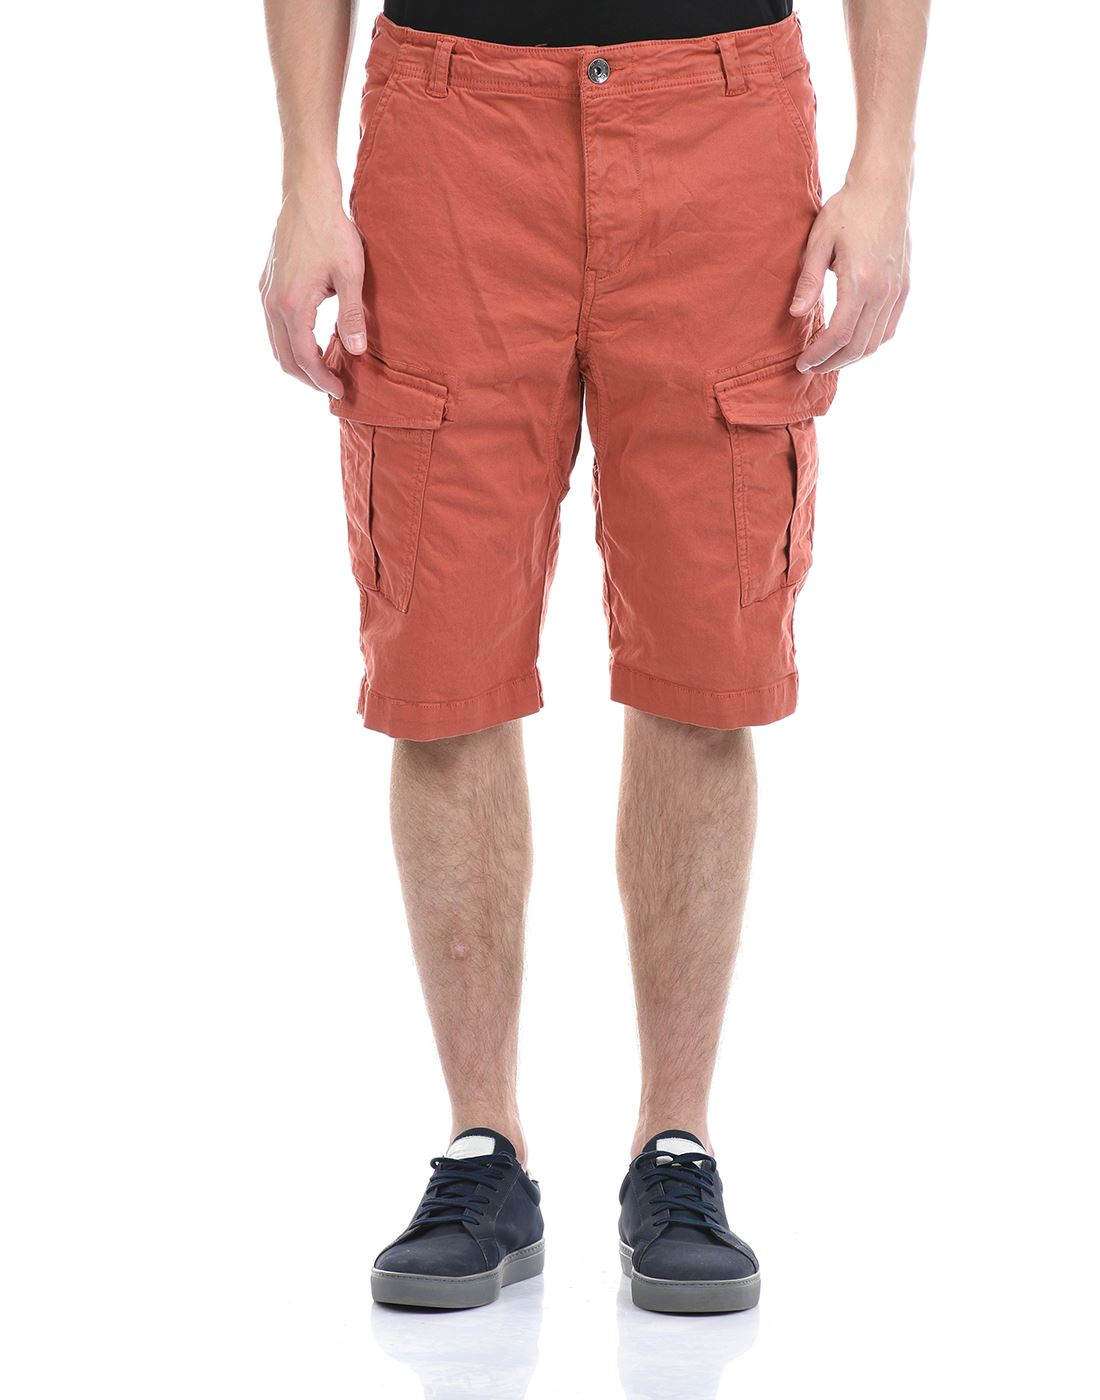 Gas Jeans Men Casual Wear Red Shorts